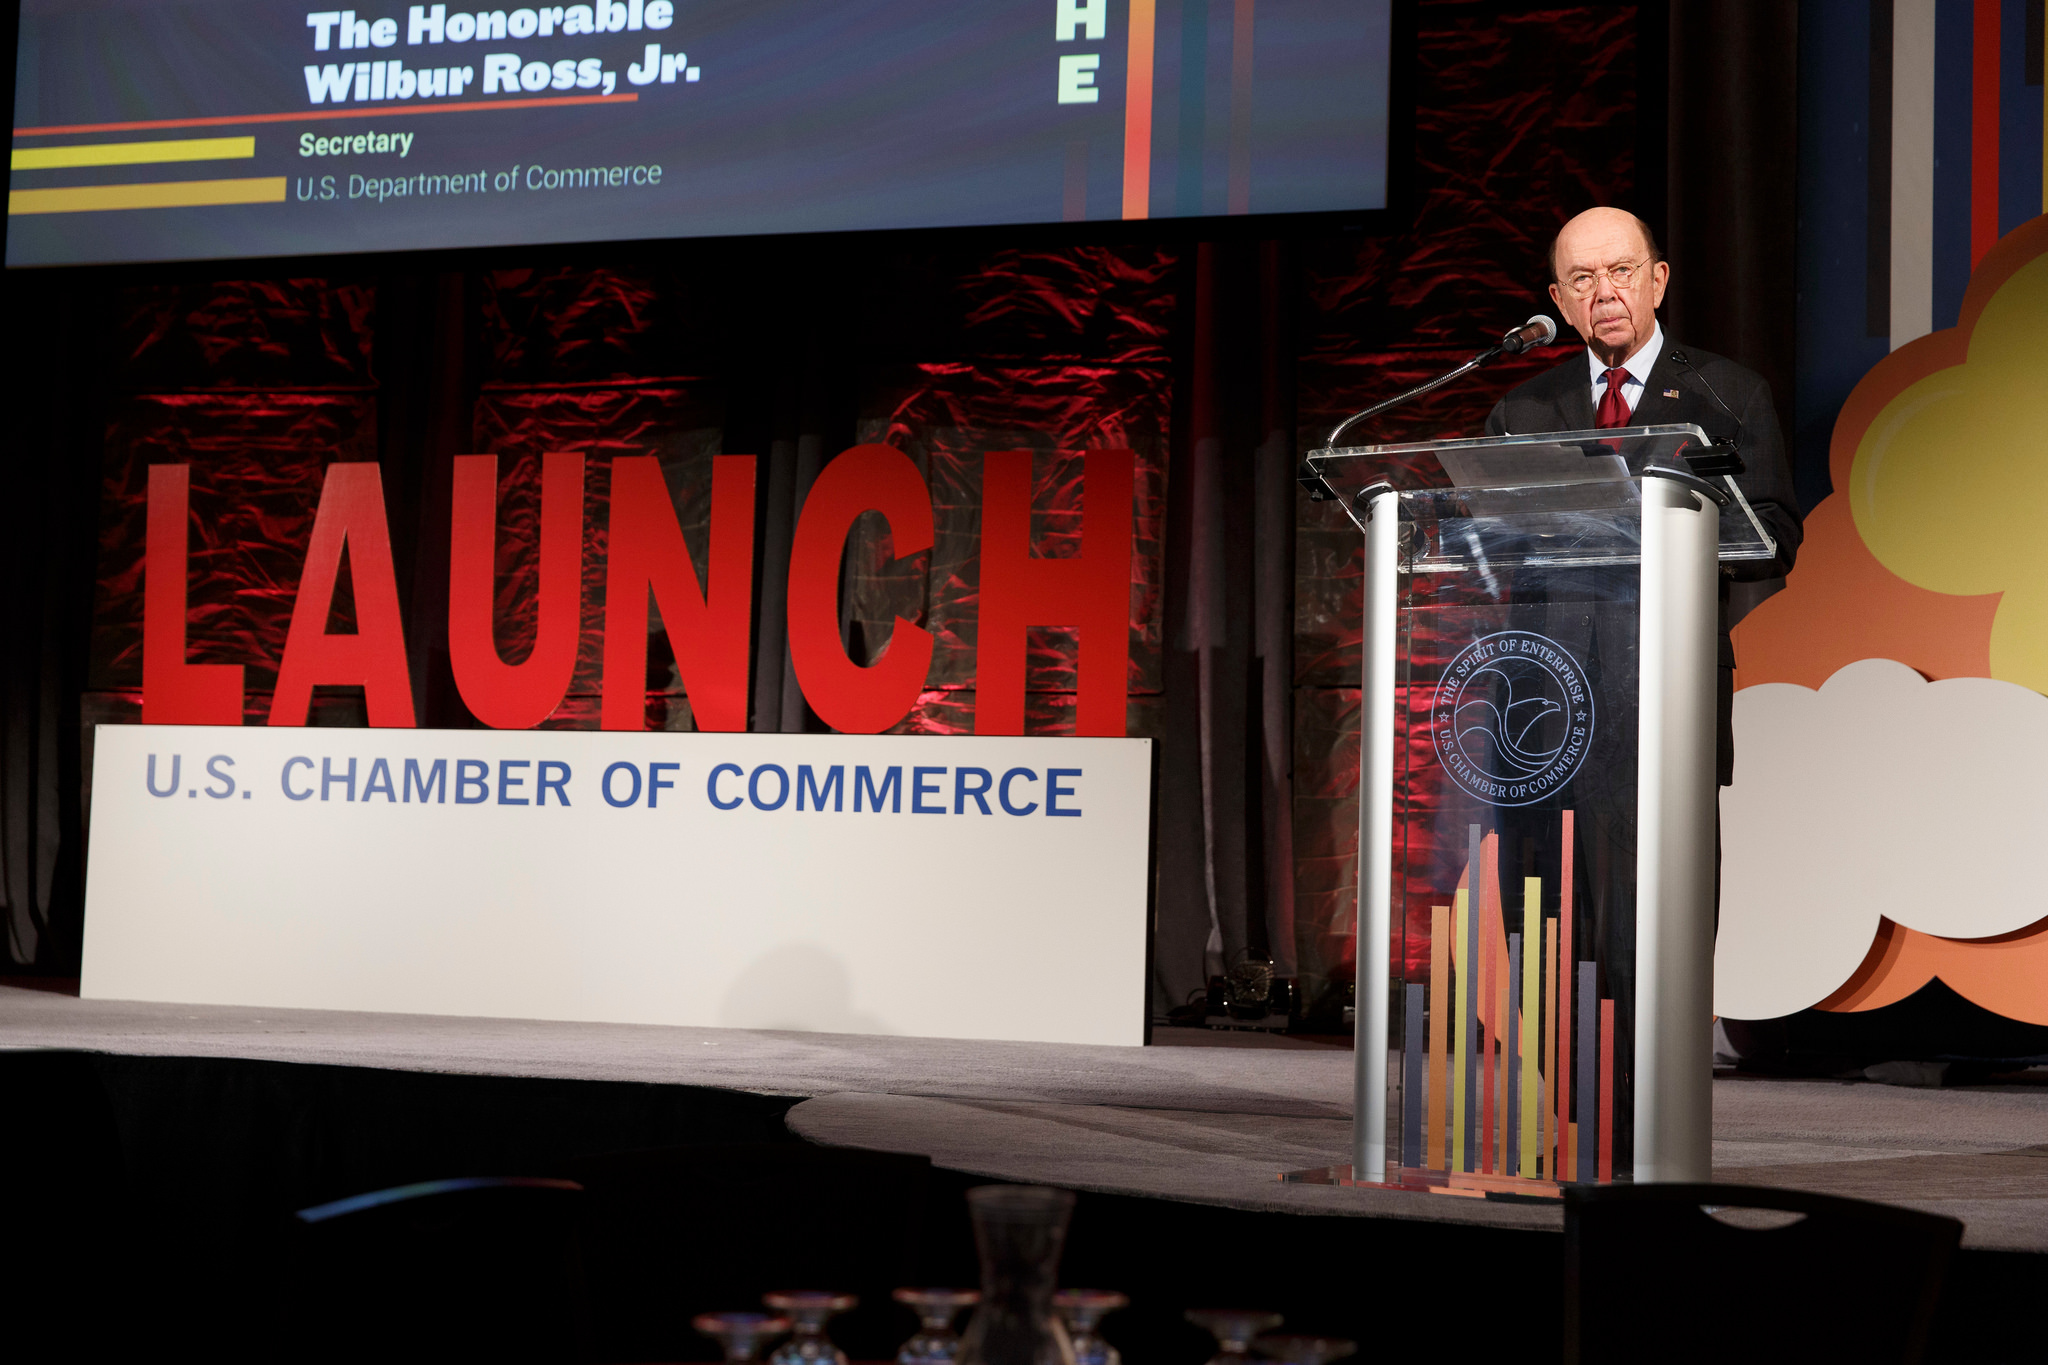 Secretary Wilbur Ross speaking at the U.S. Chamber of Commerce LAUNCH event